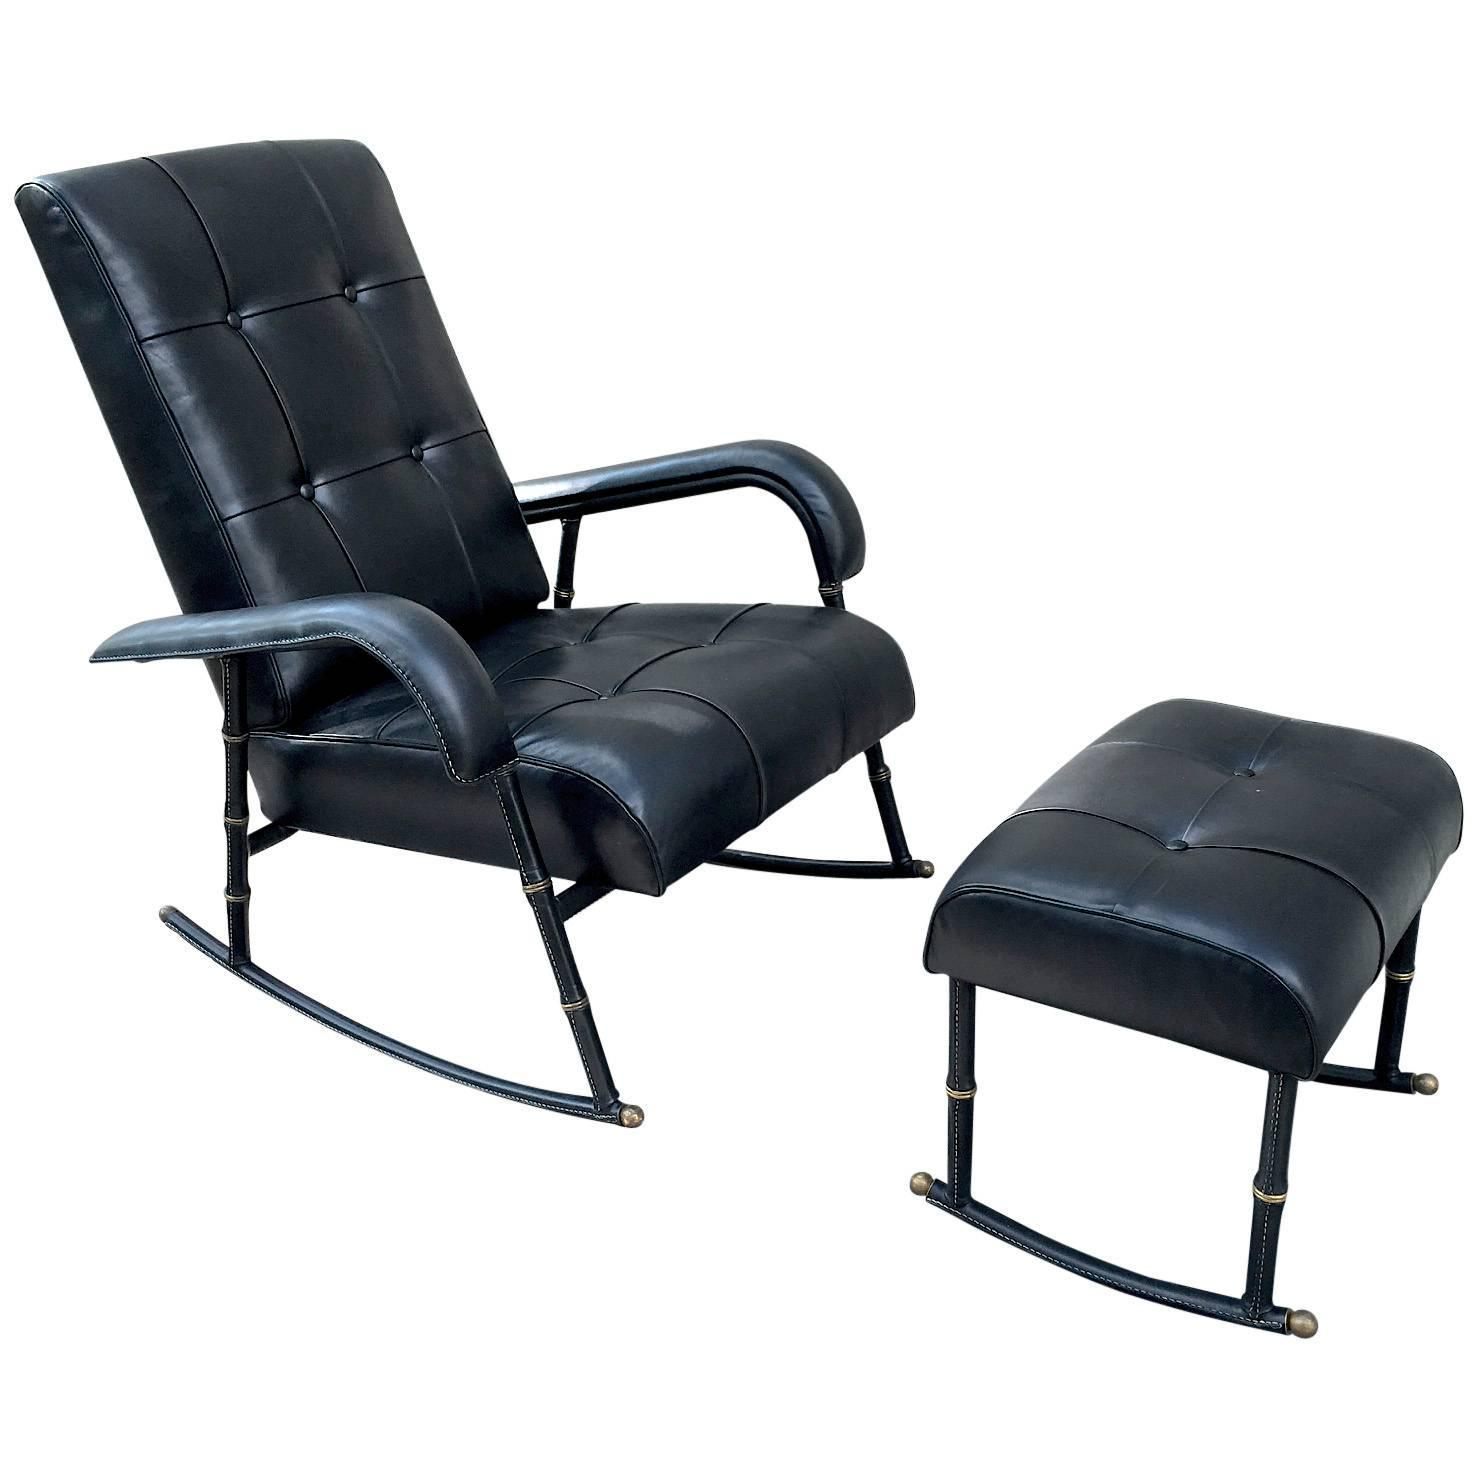 rocking chair with footstool india folding walmart jacques adnet rare and in black